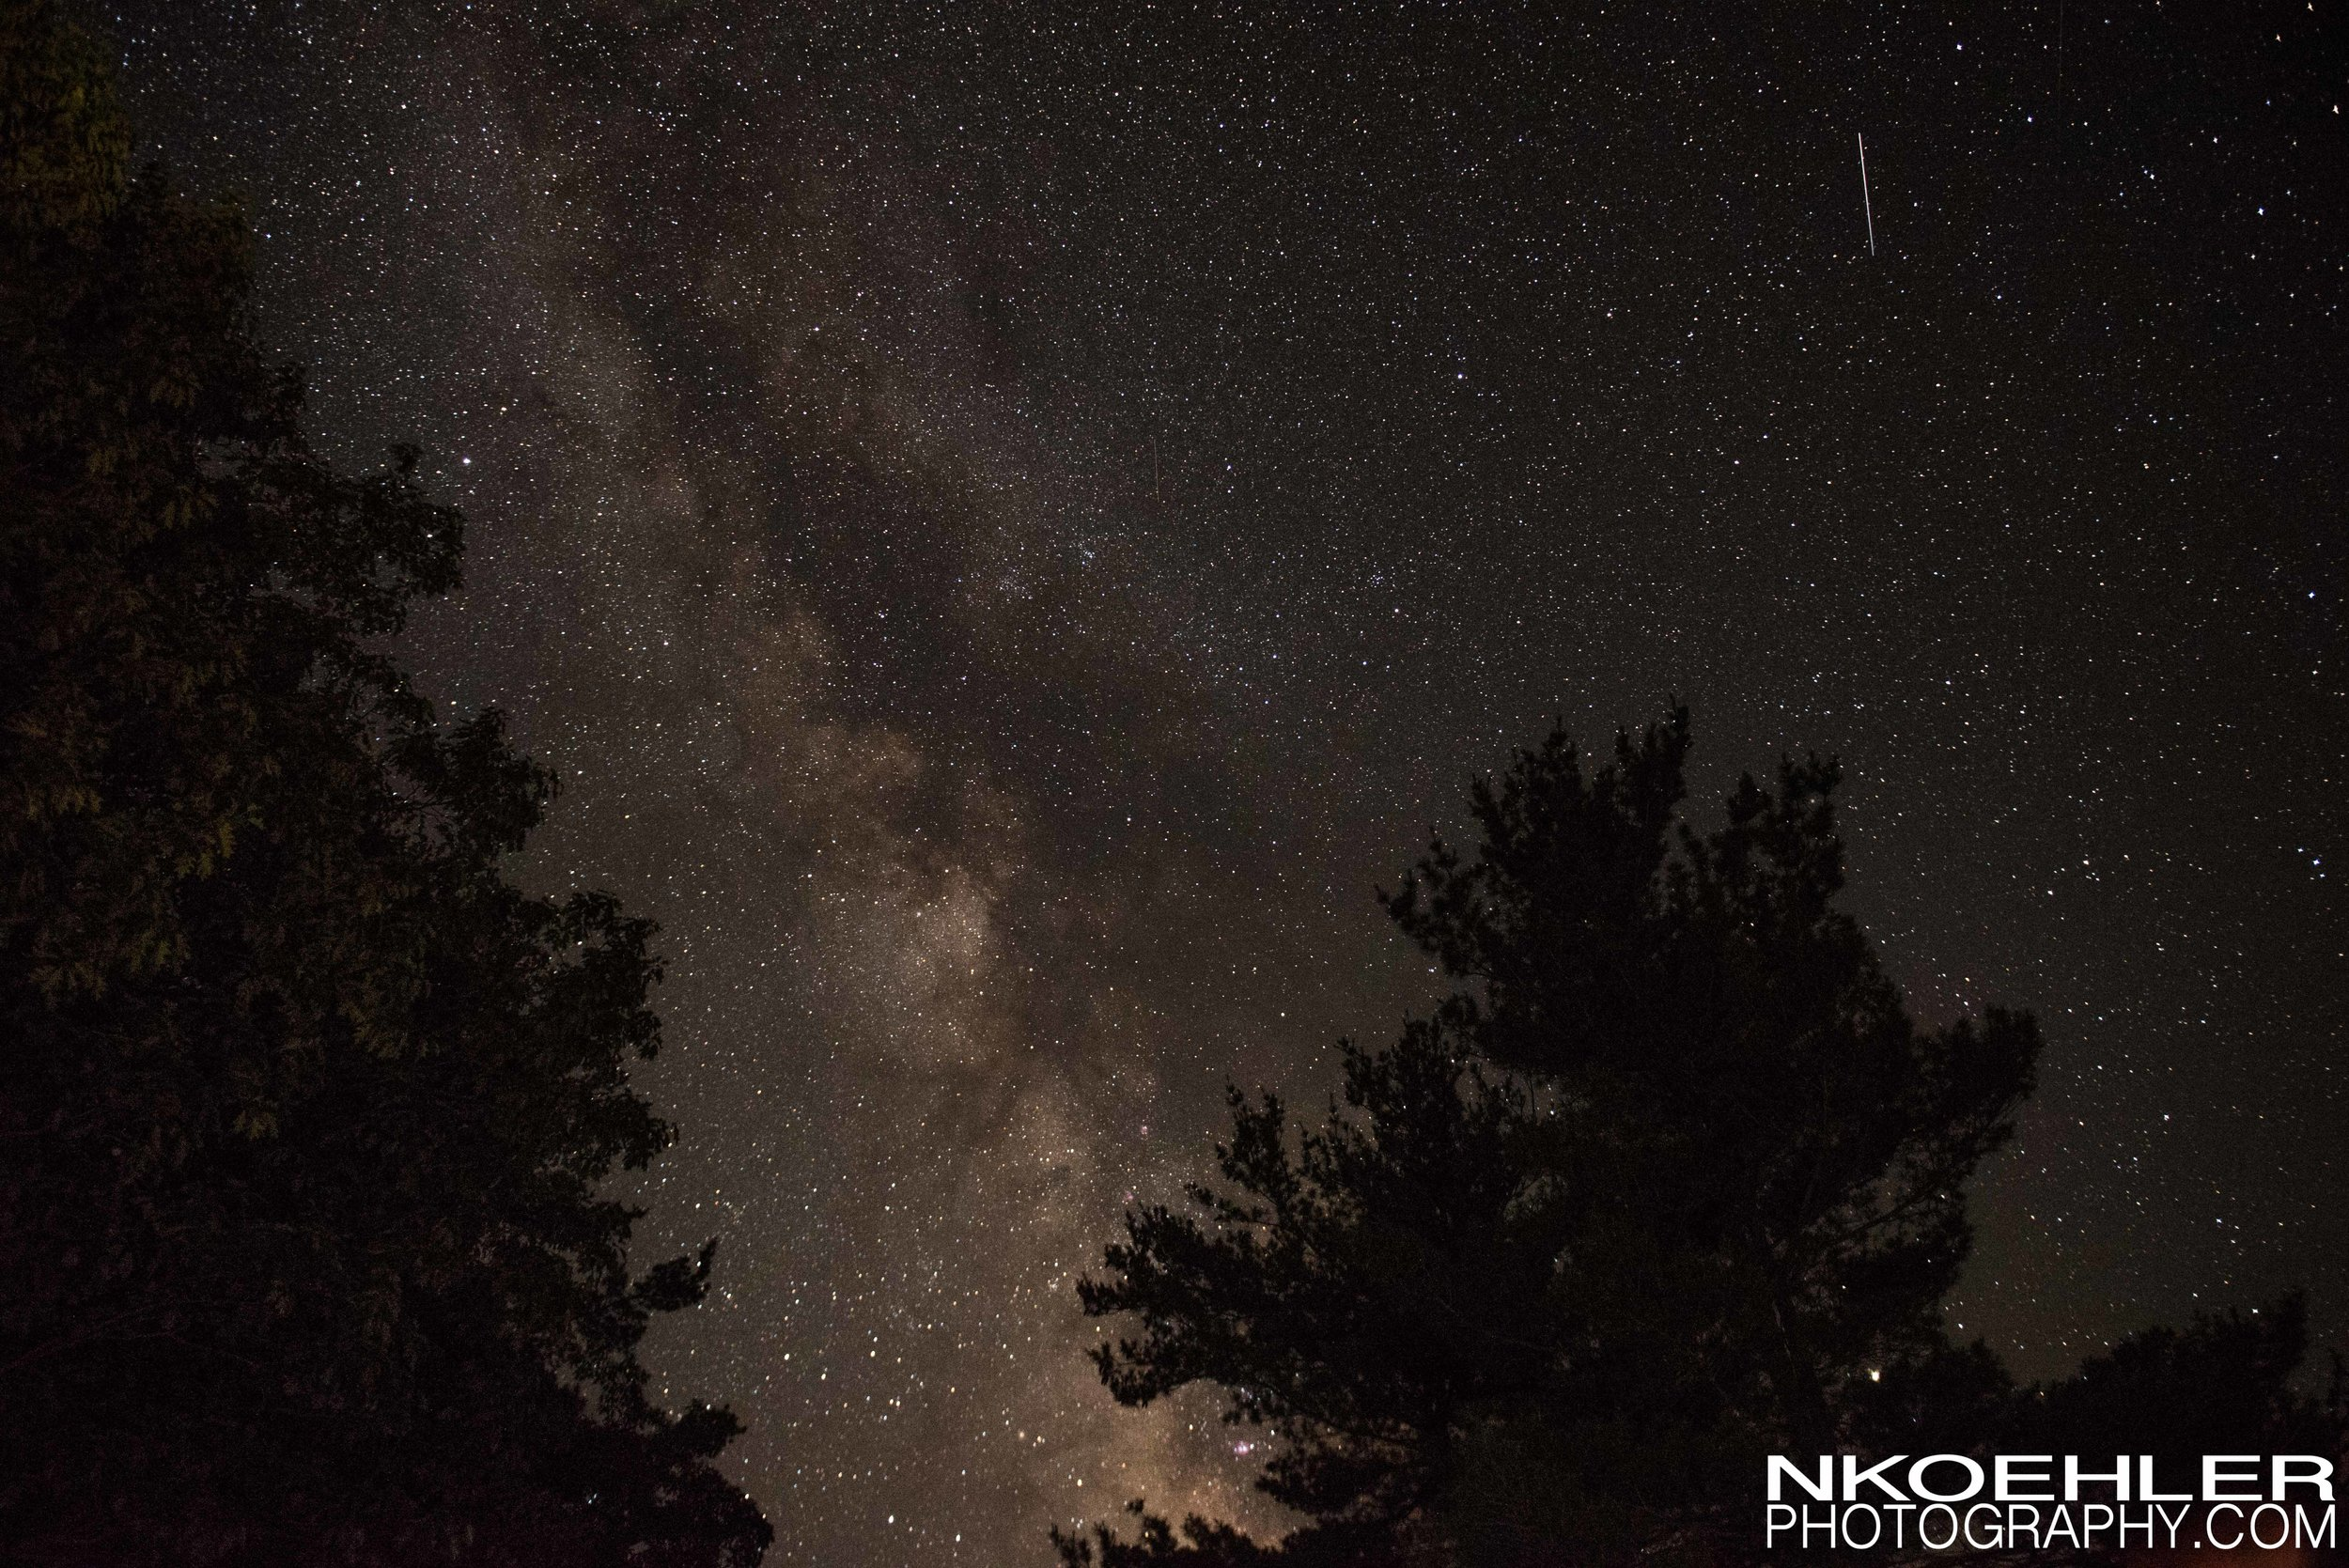 Also able to see the Milky Way for the first time around 1am.